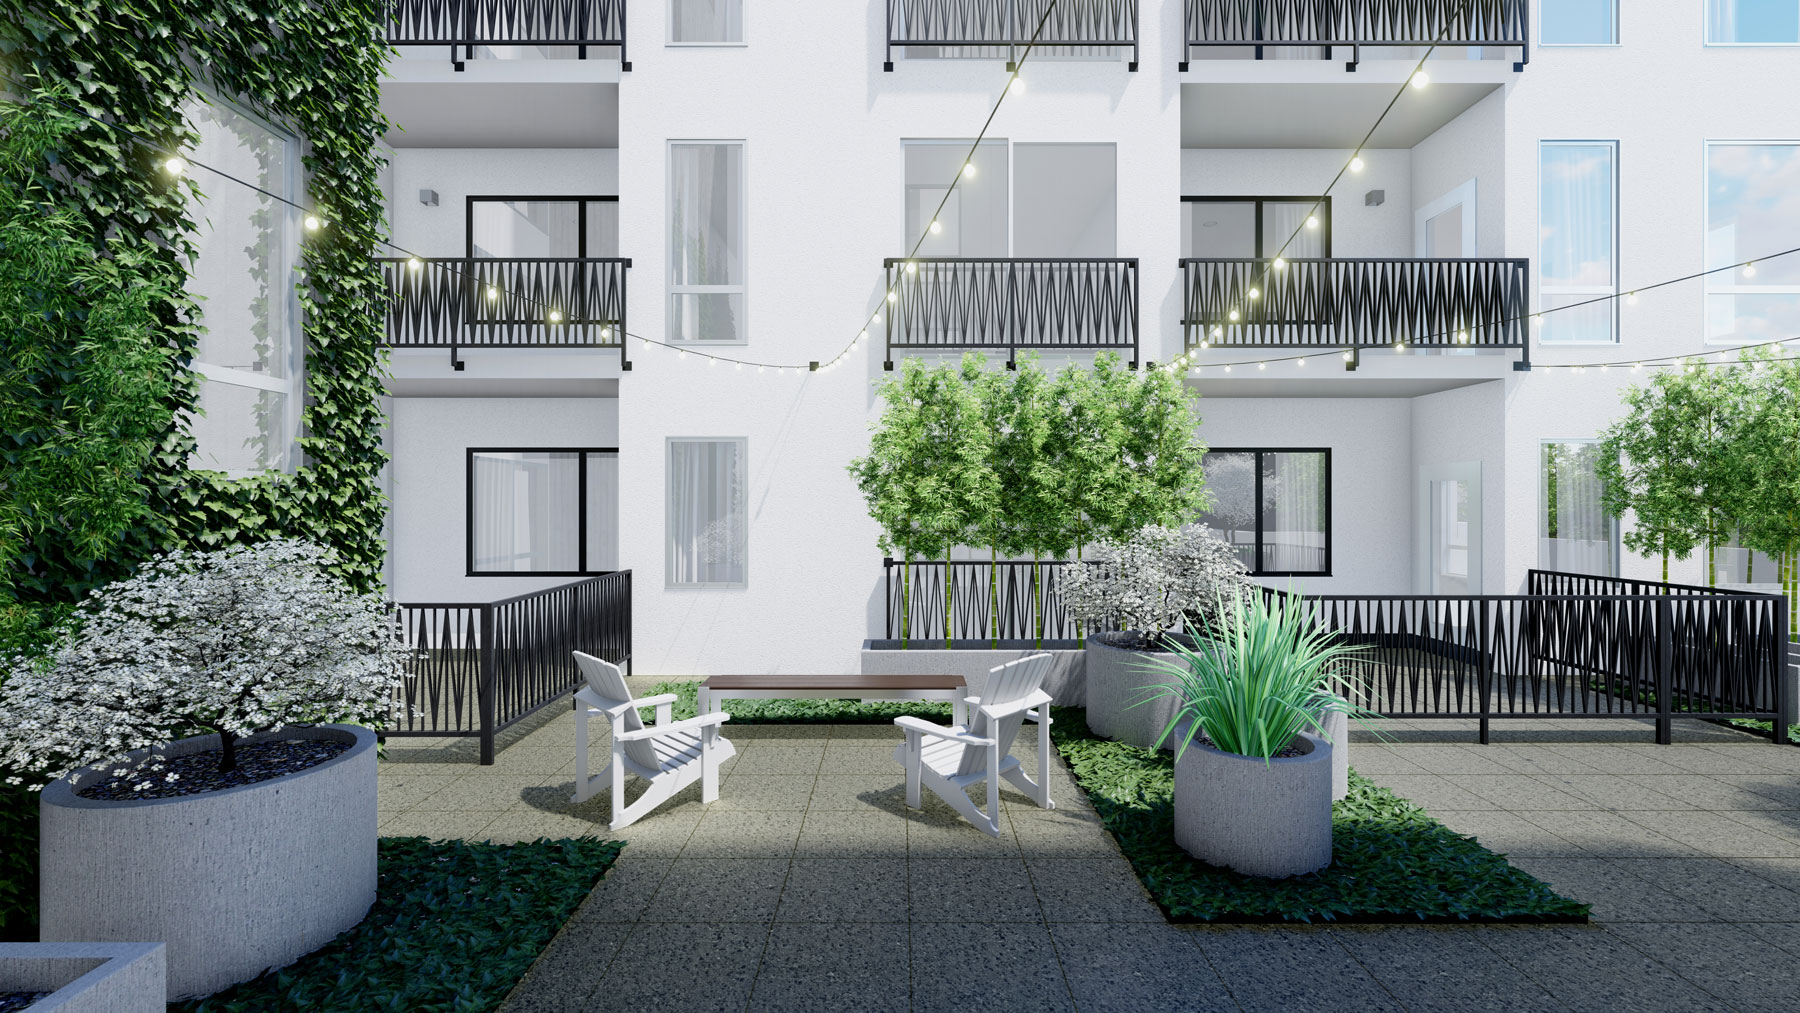 A rendering of the courtyard showing greenery and outdoor seating